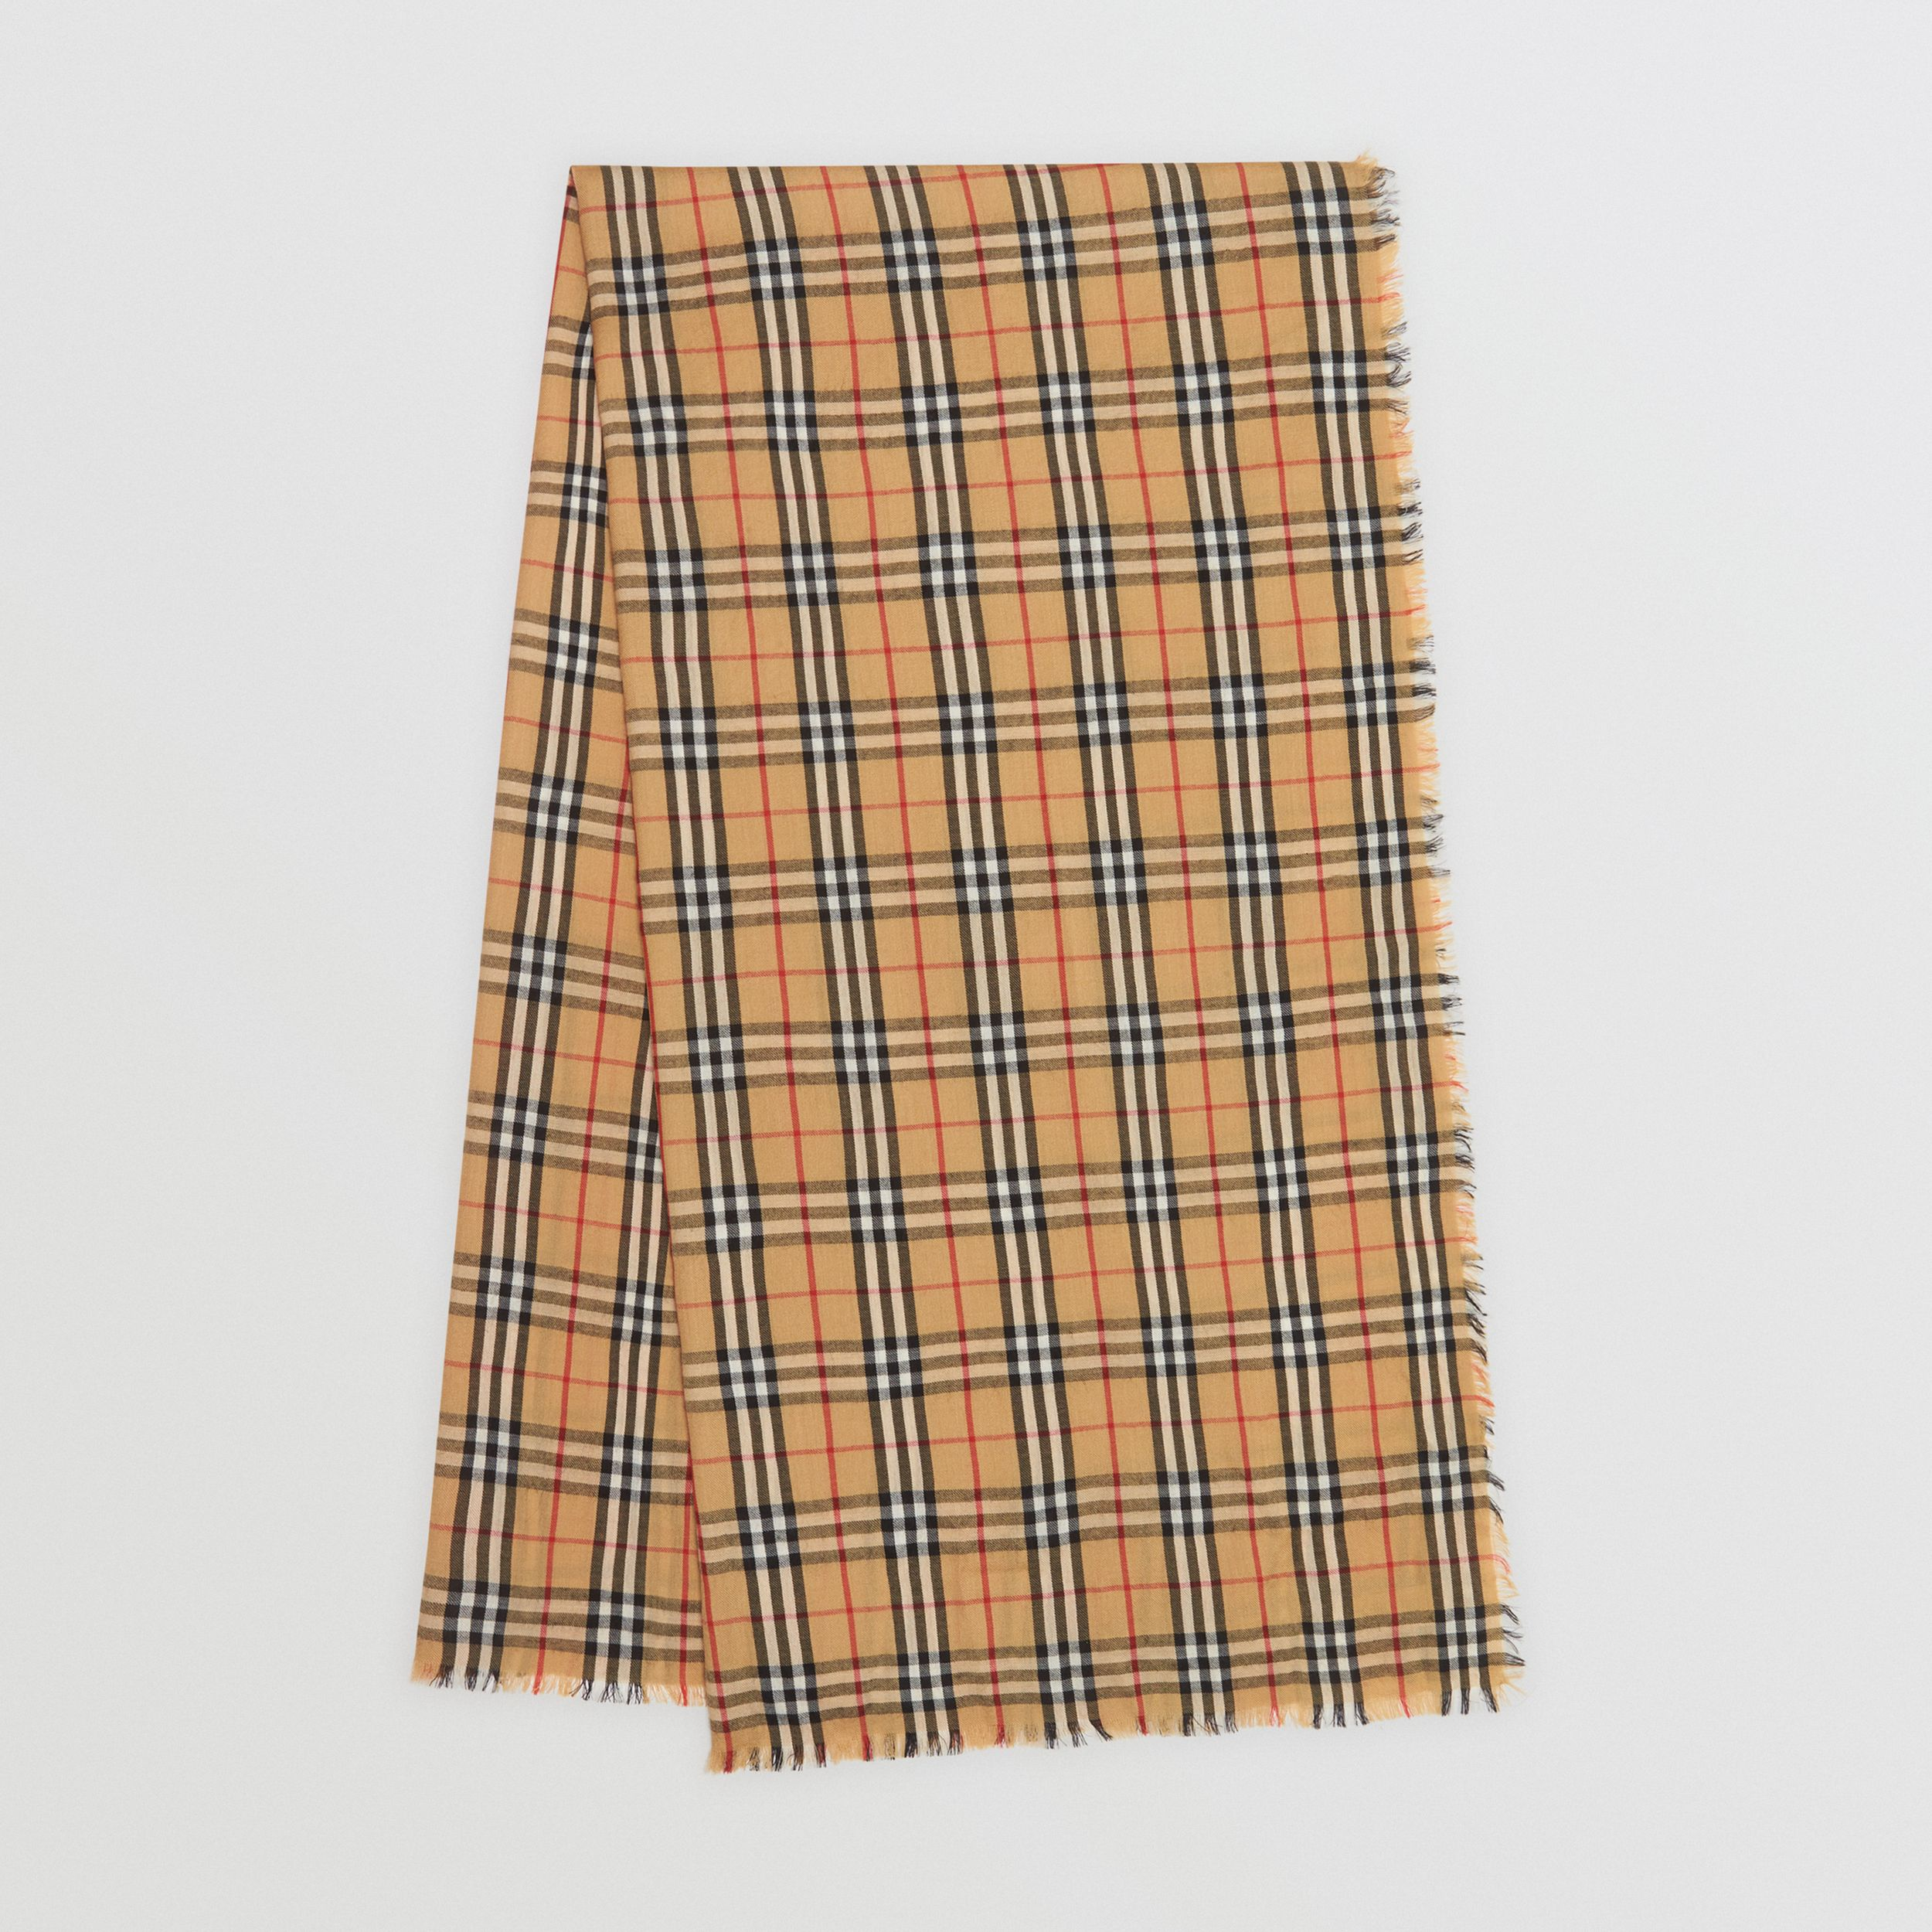 Vintage Check Lightweight Cashmere Scarf in Antique Yellow | Burberry - 1